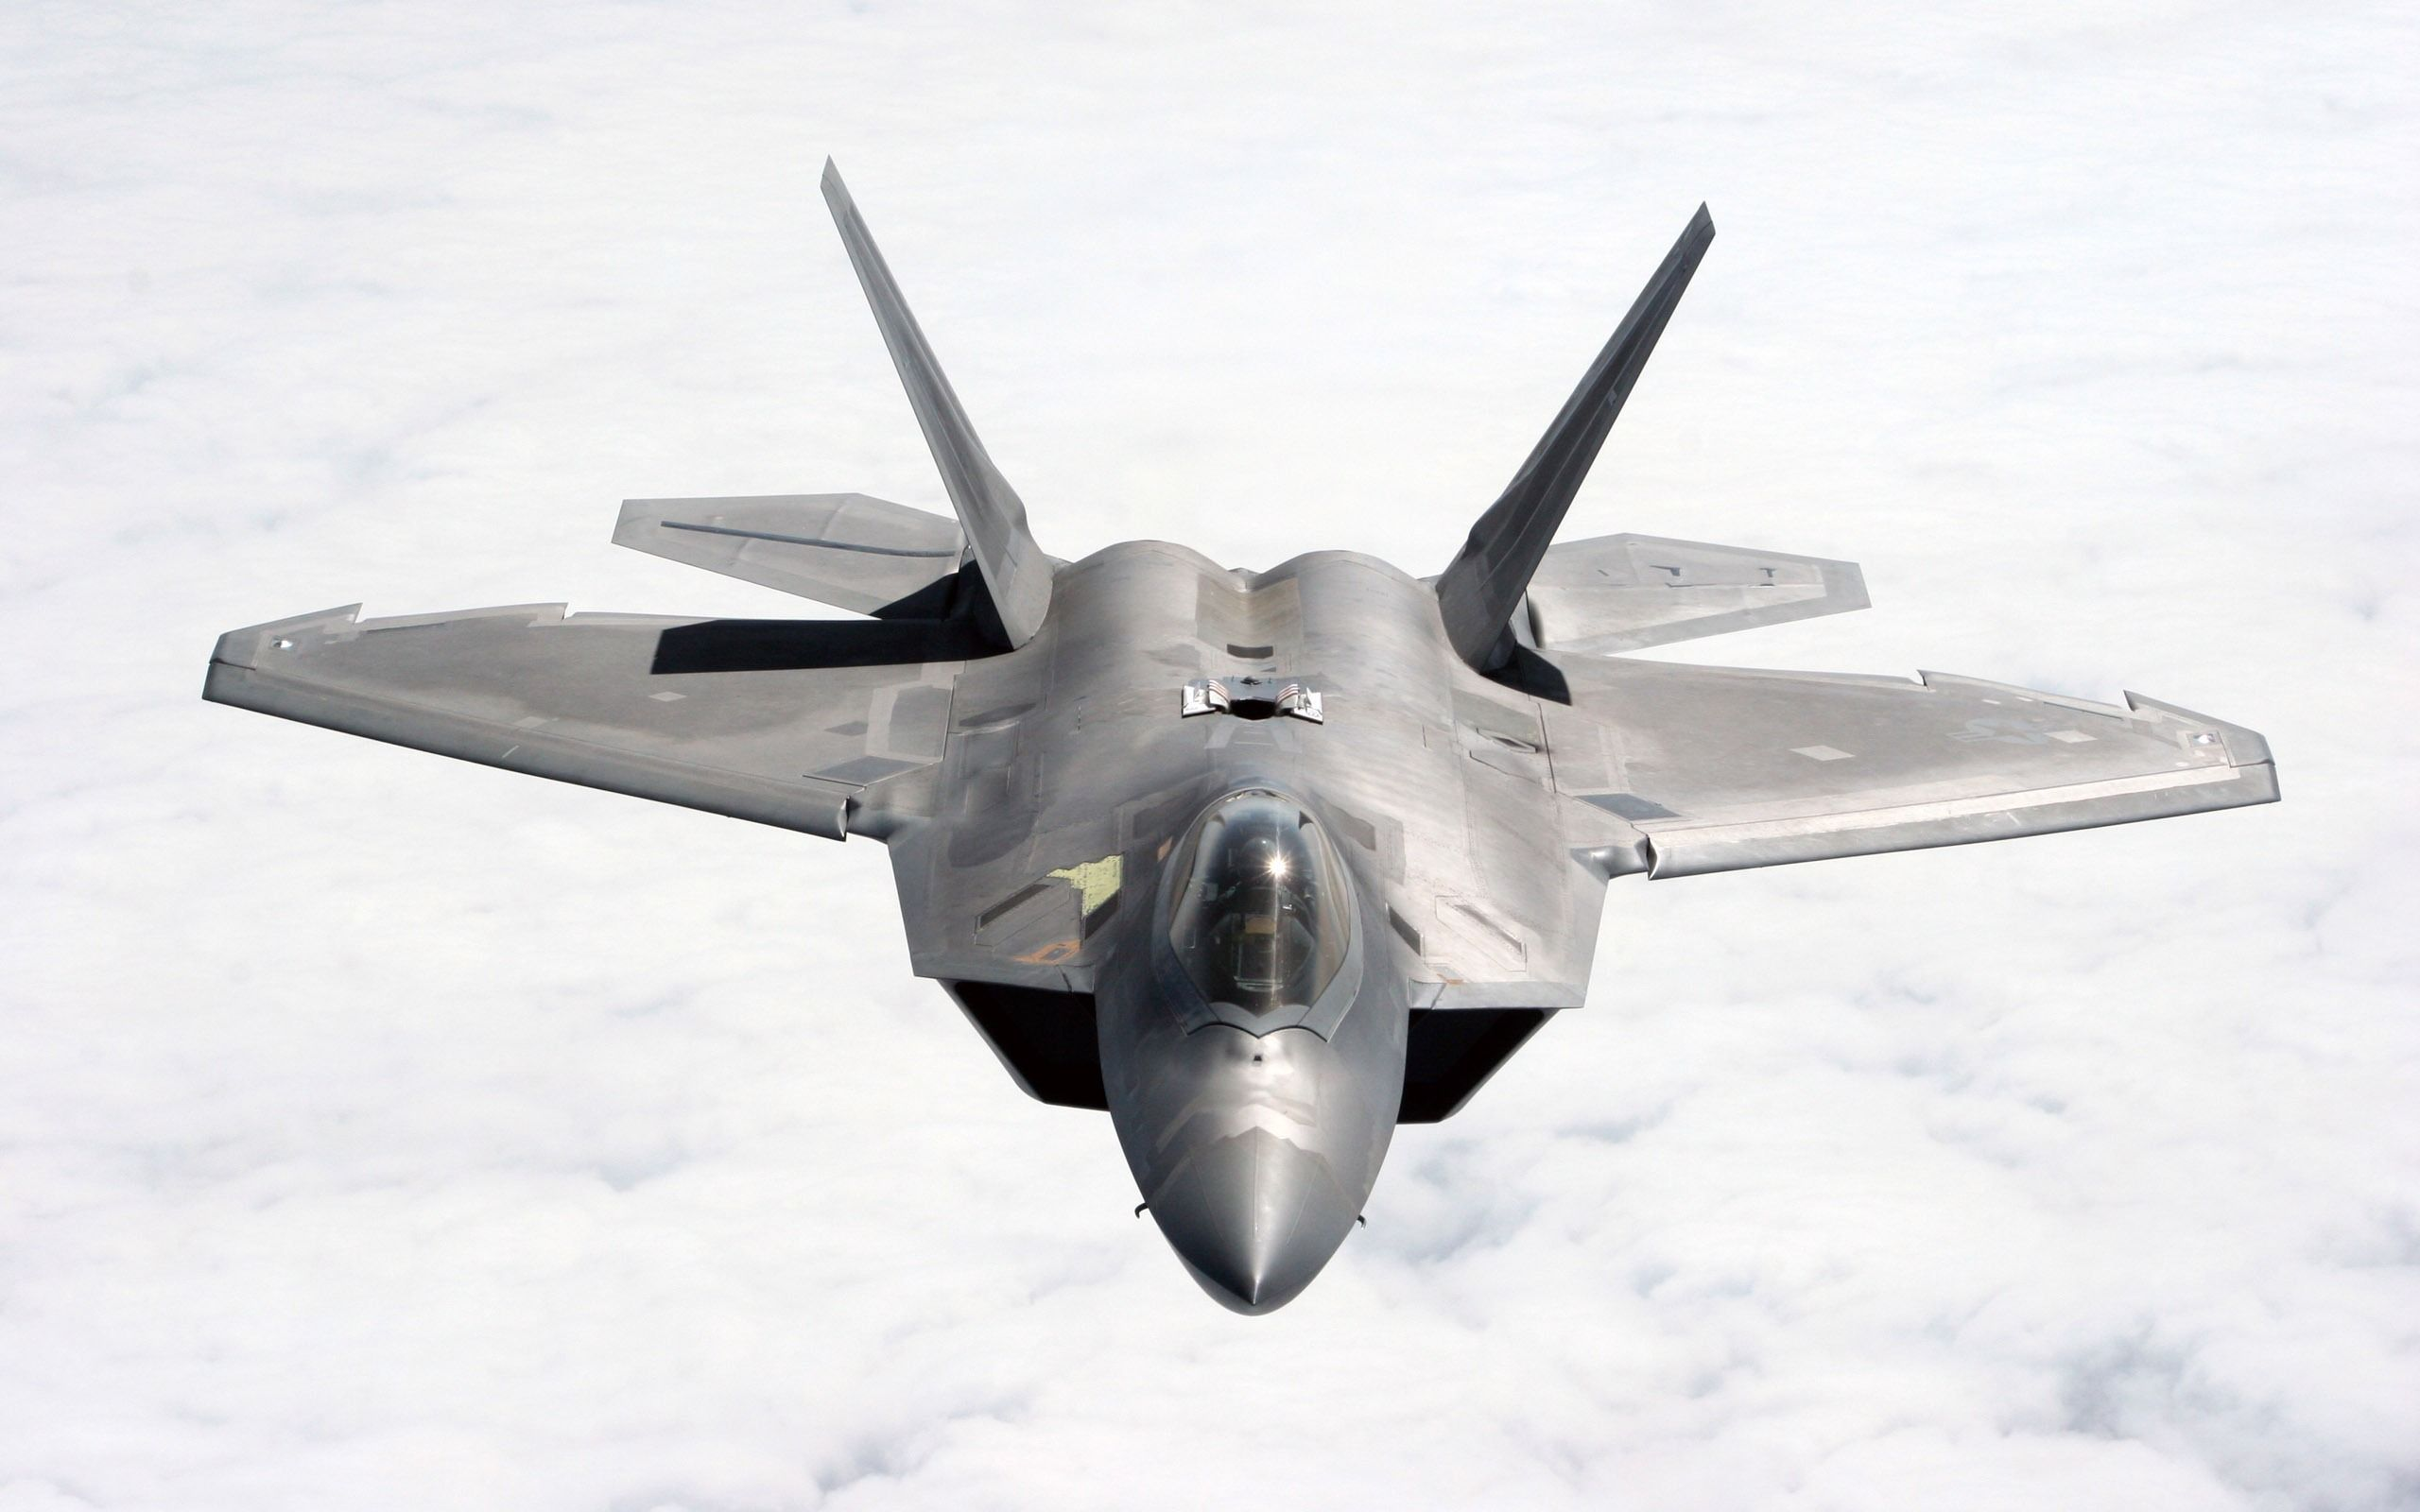 4 X LOCKHEED MARTIN F-22 RAPTOR PHOTOGRAPHS 2